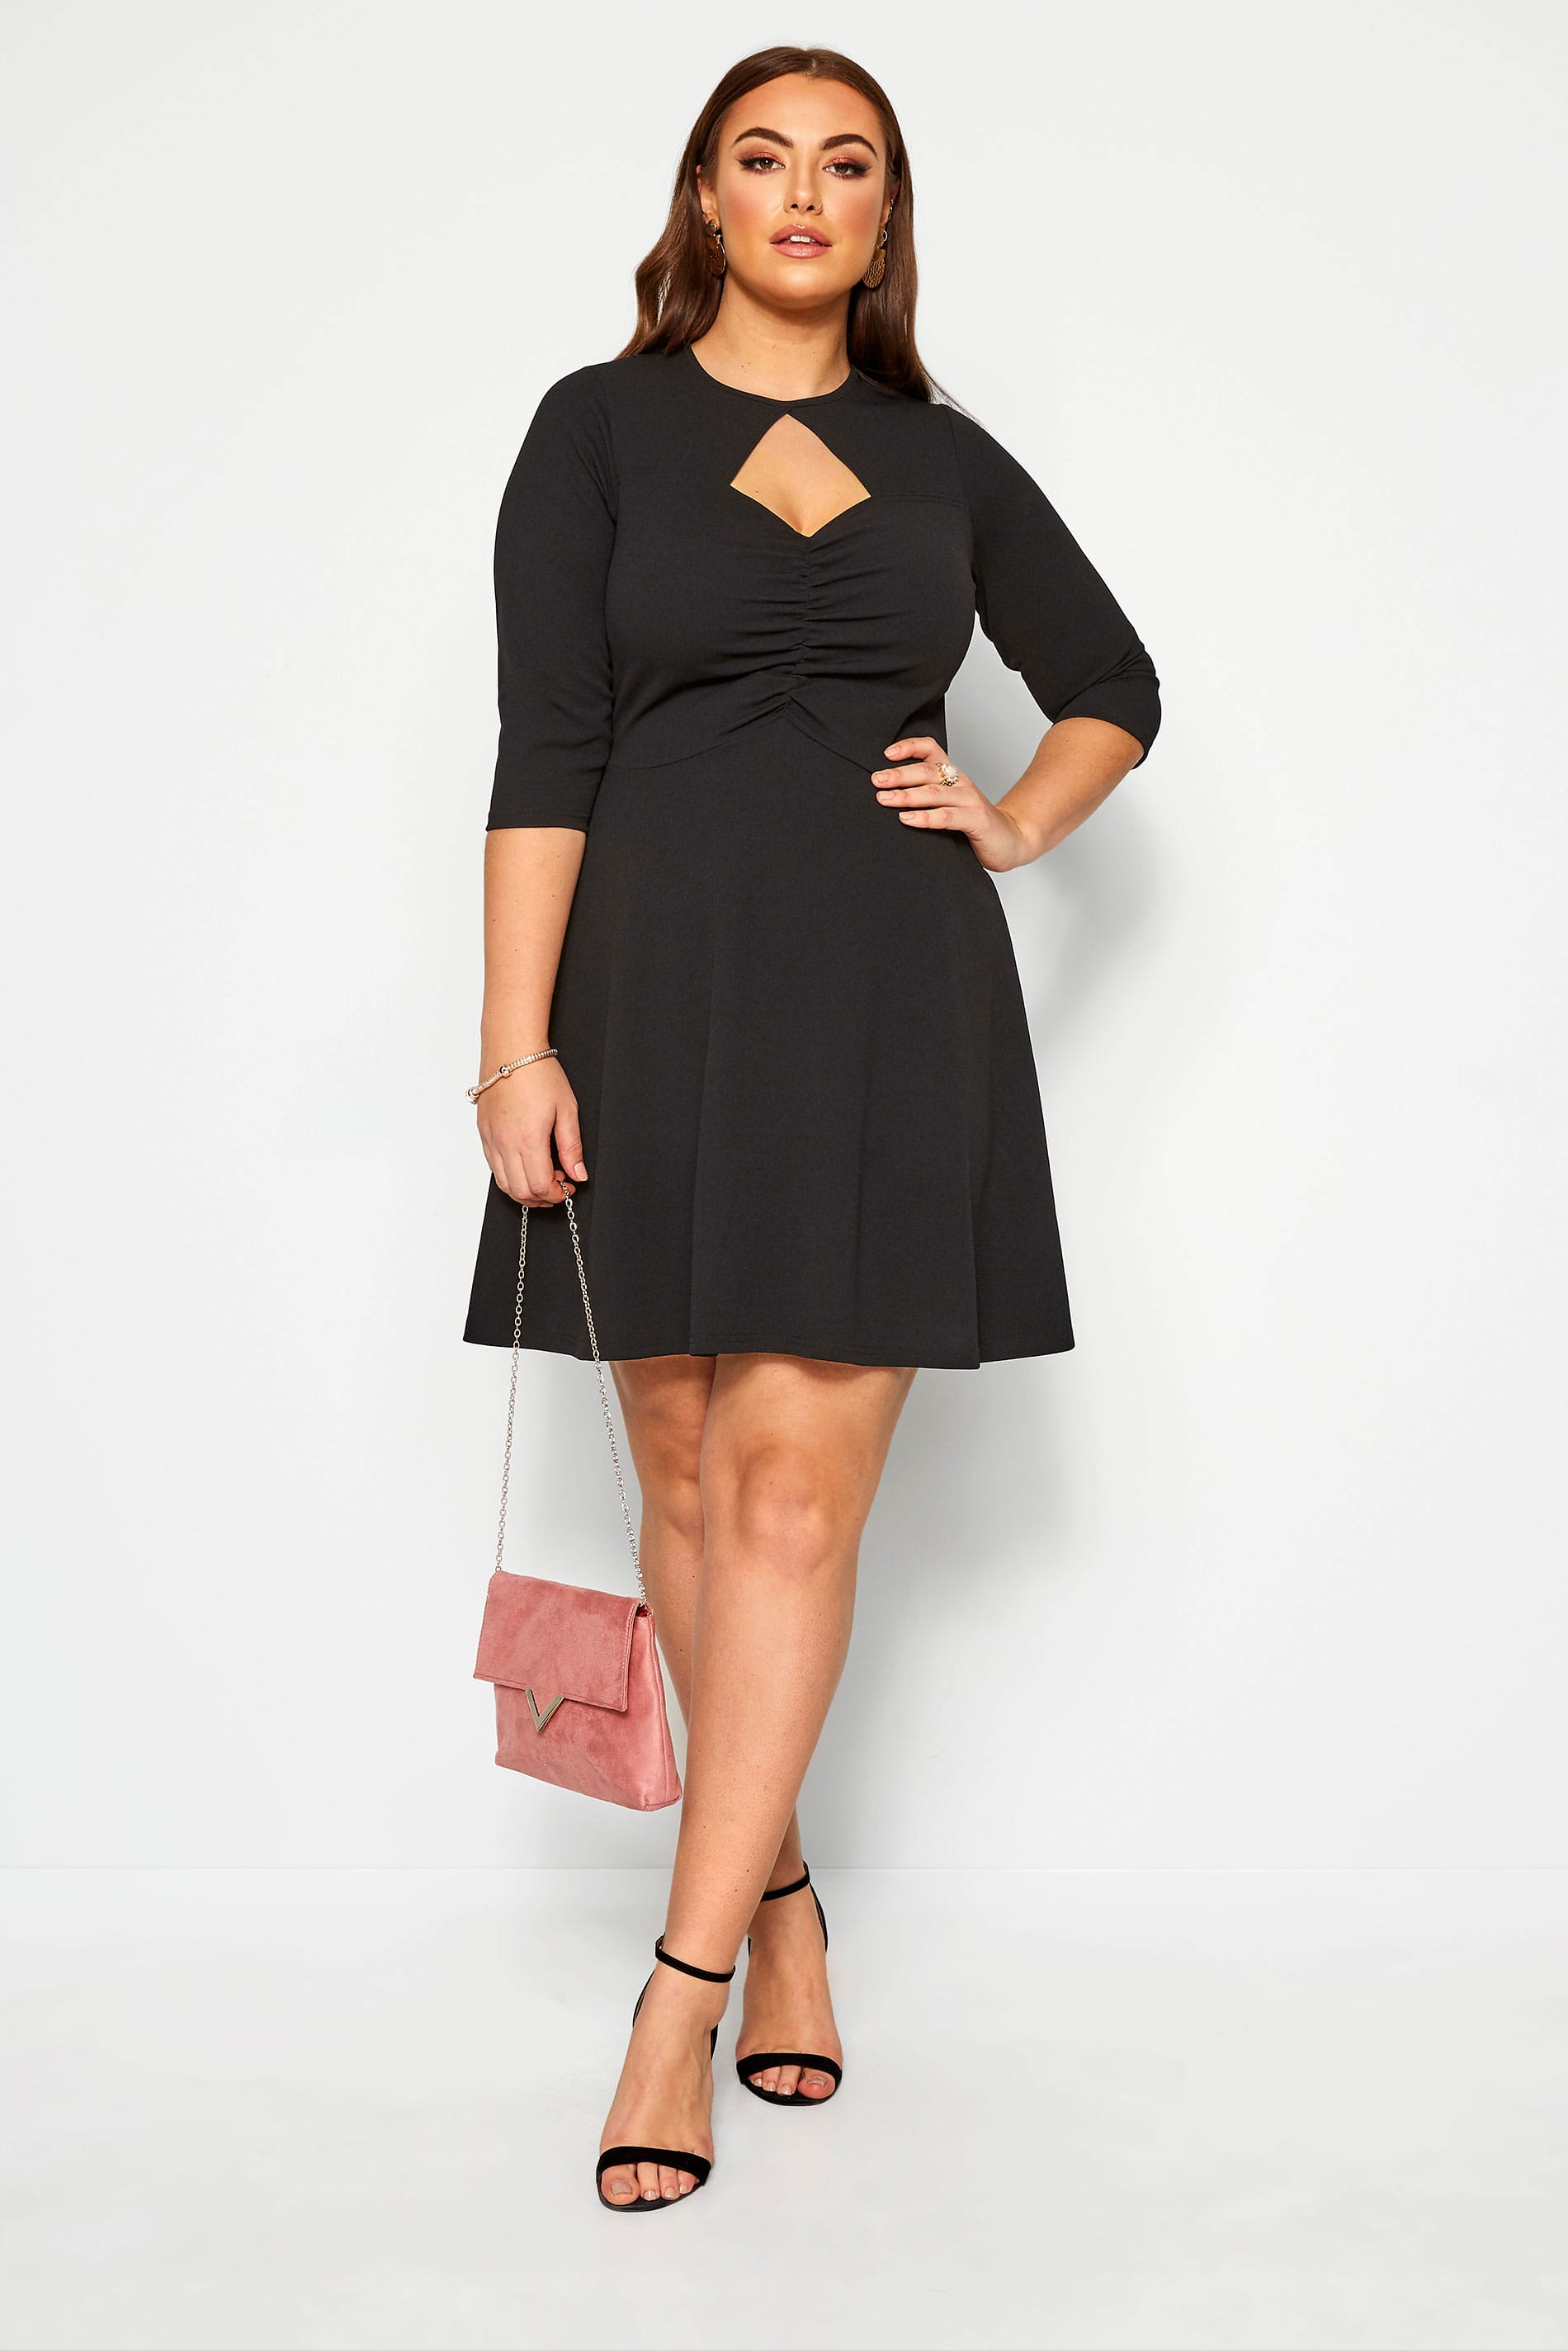 LIMITED COLLECTION Black Ruched Tea Dress